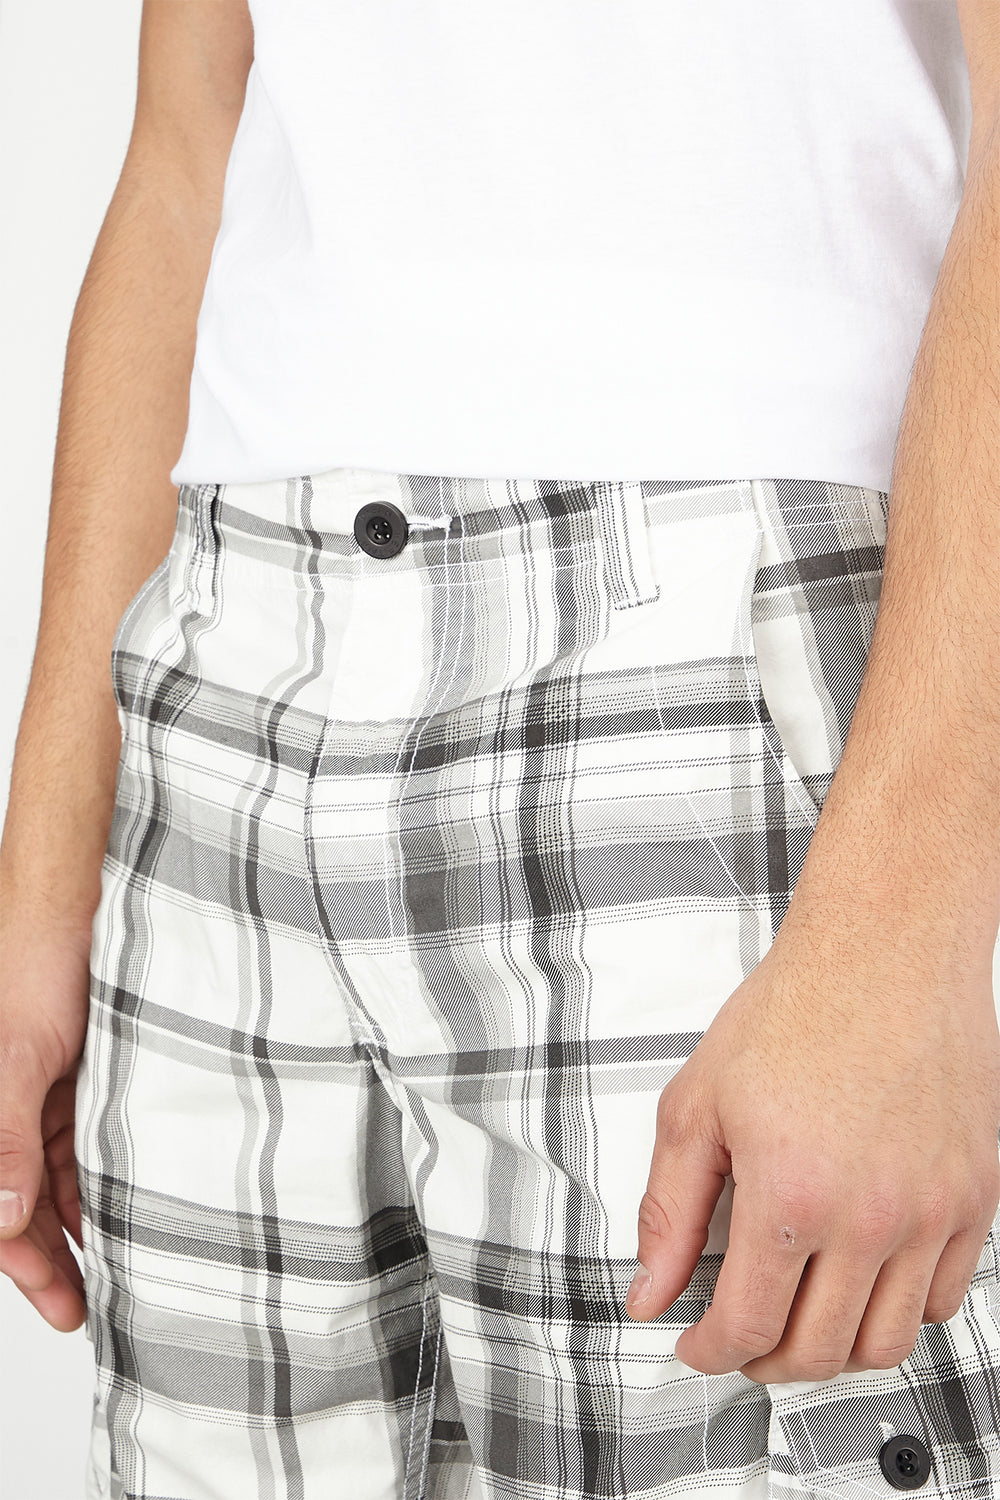 Plaid Cargo Short Black with White